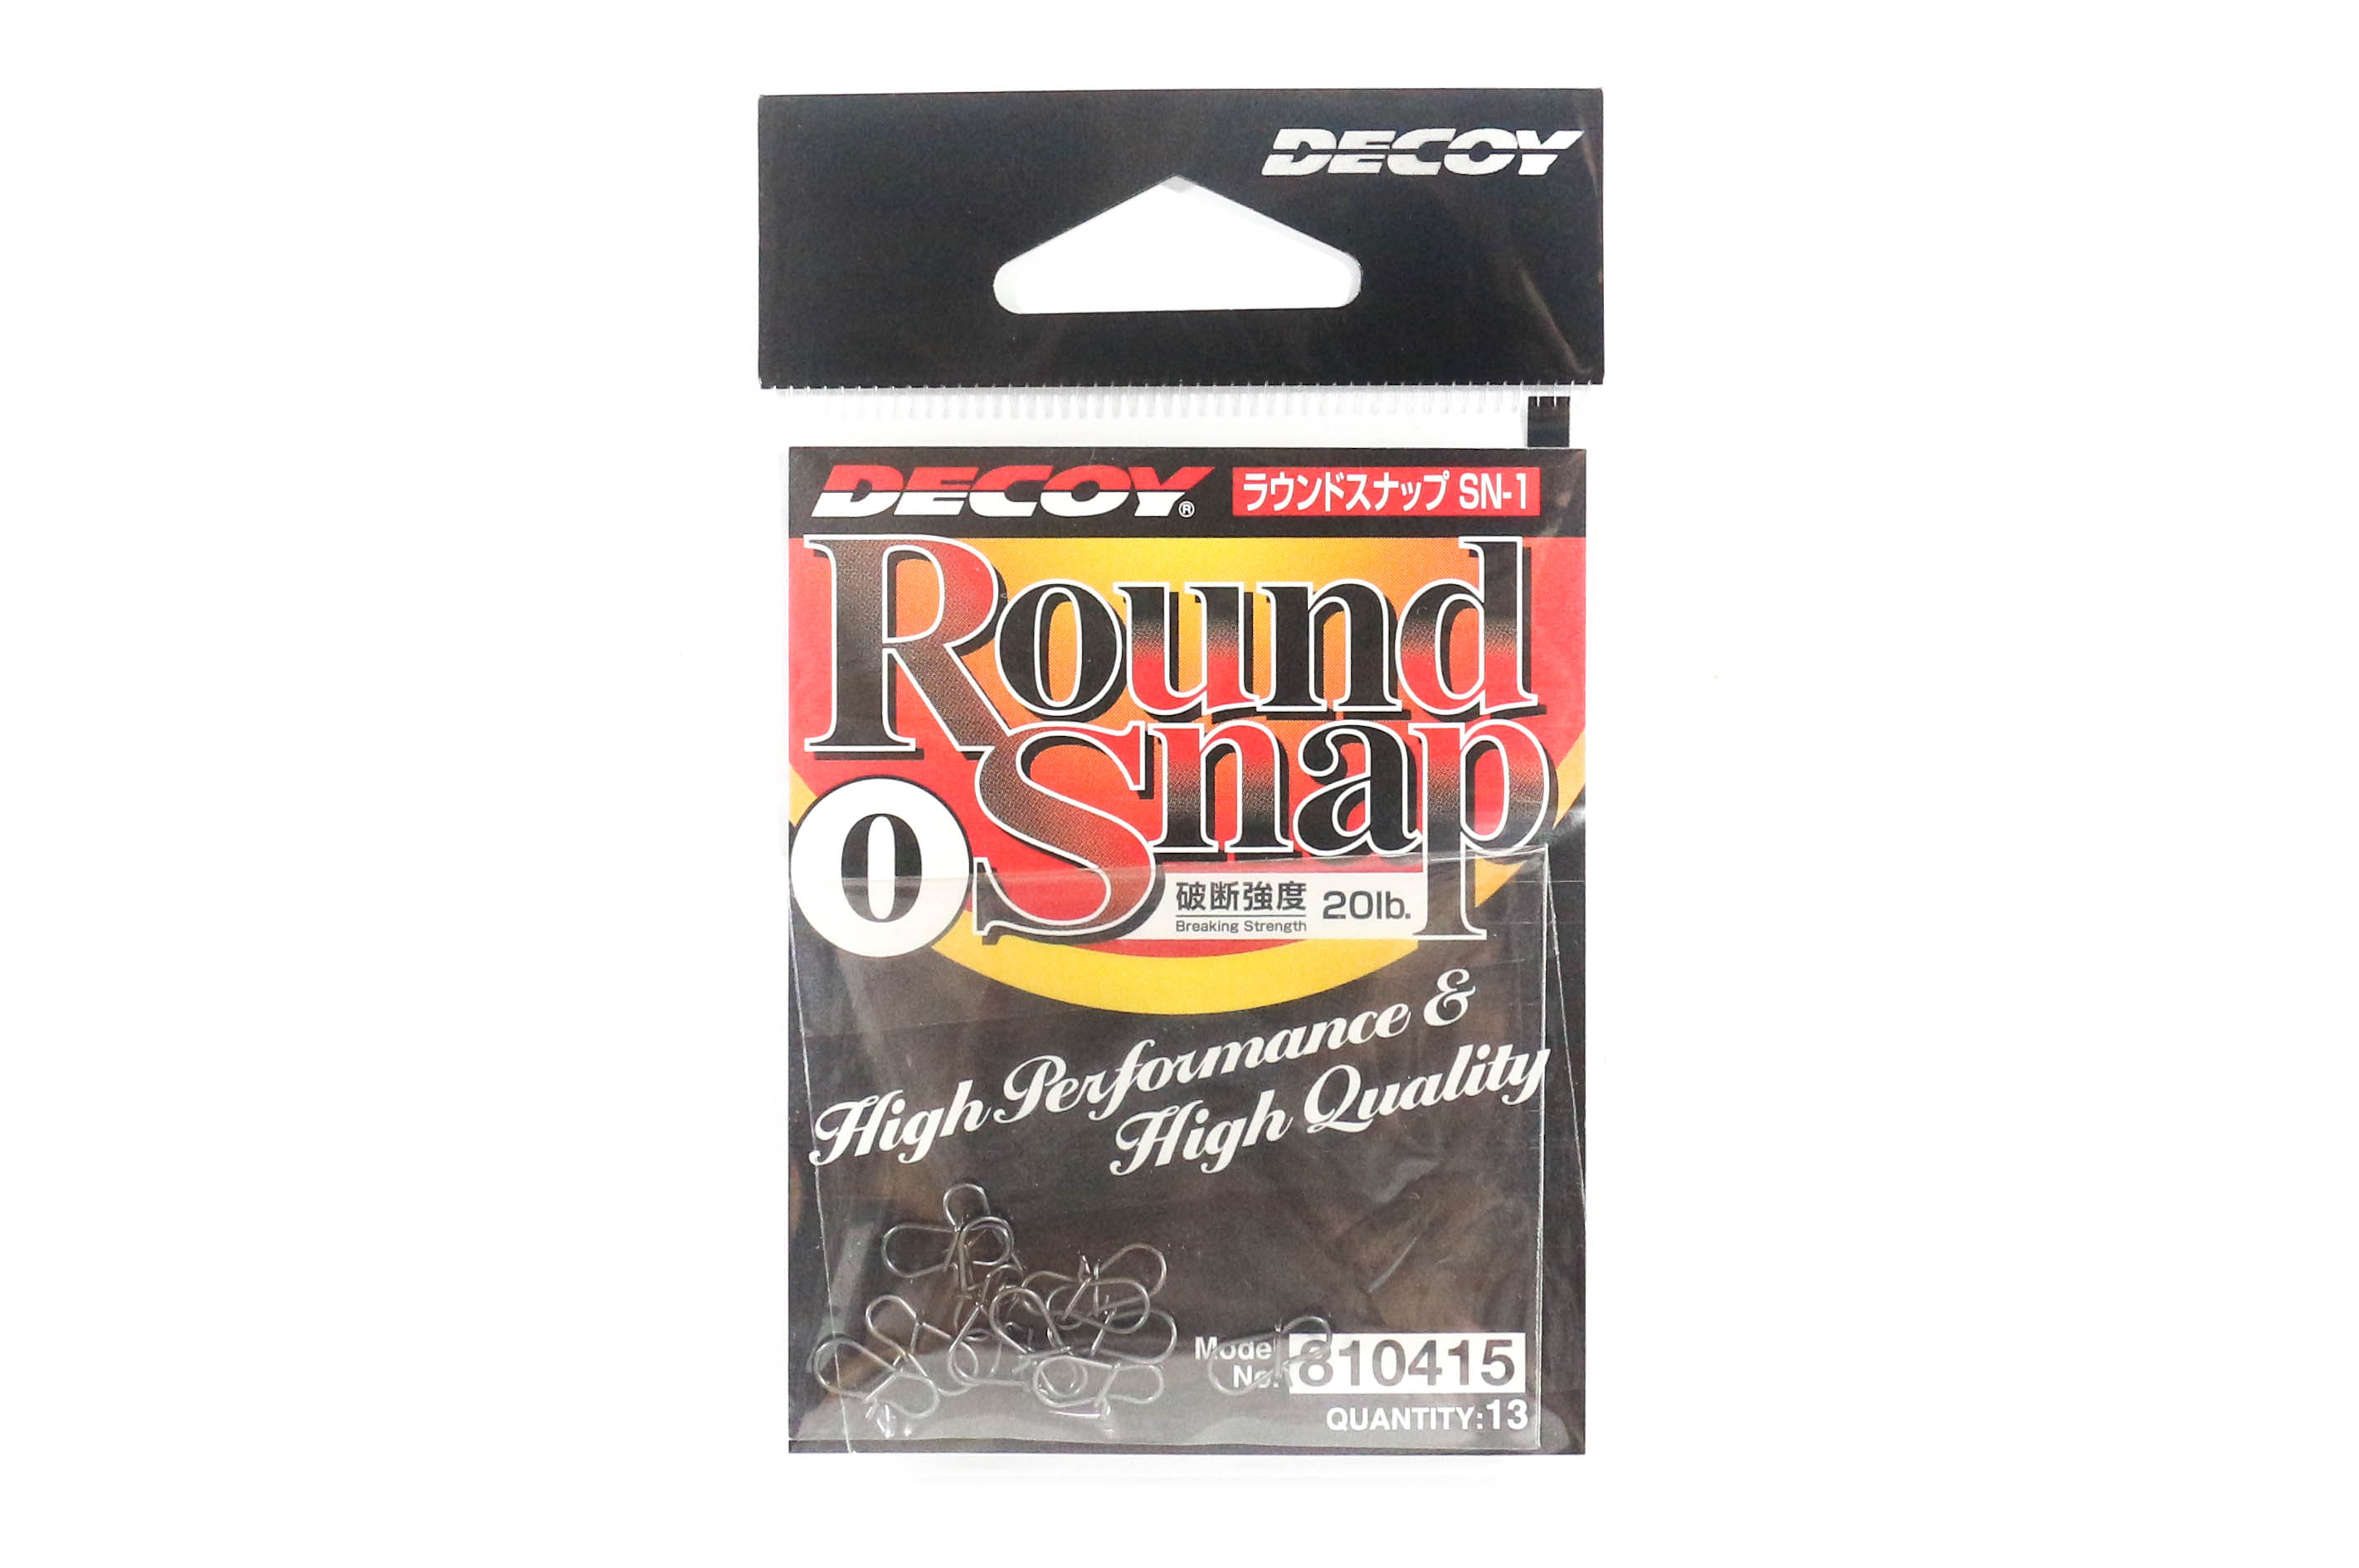 Decoy SN-1 Round Snap High Performance Size 0 (0415)